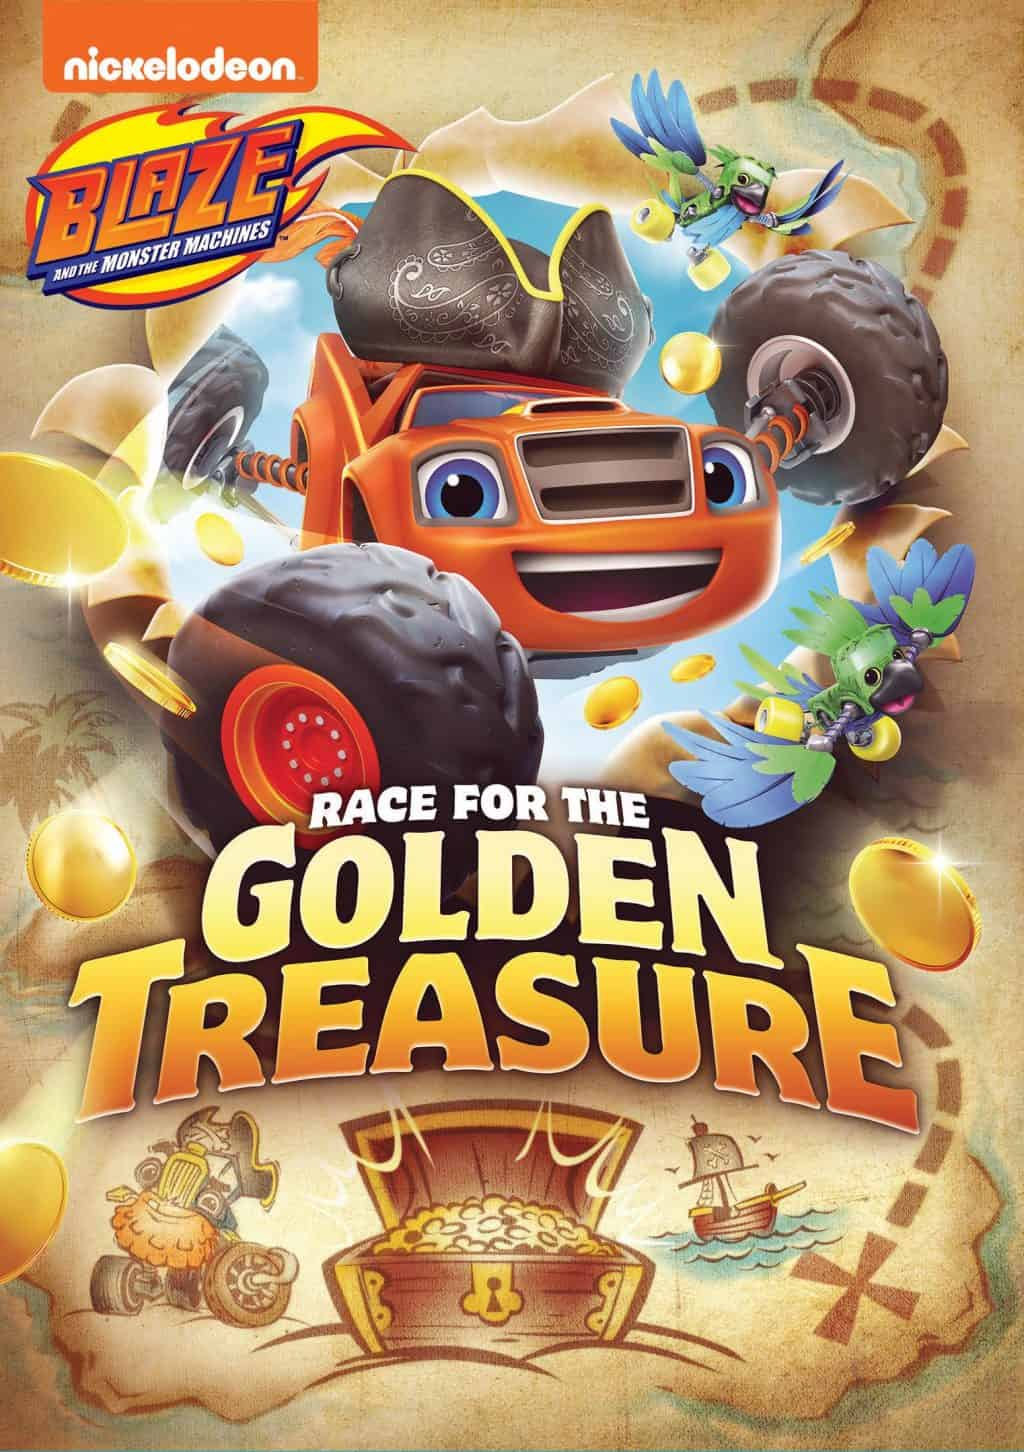 Blaze Race for the Golden Treasure Giveaway